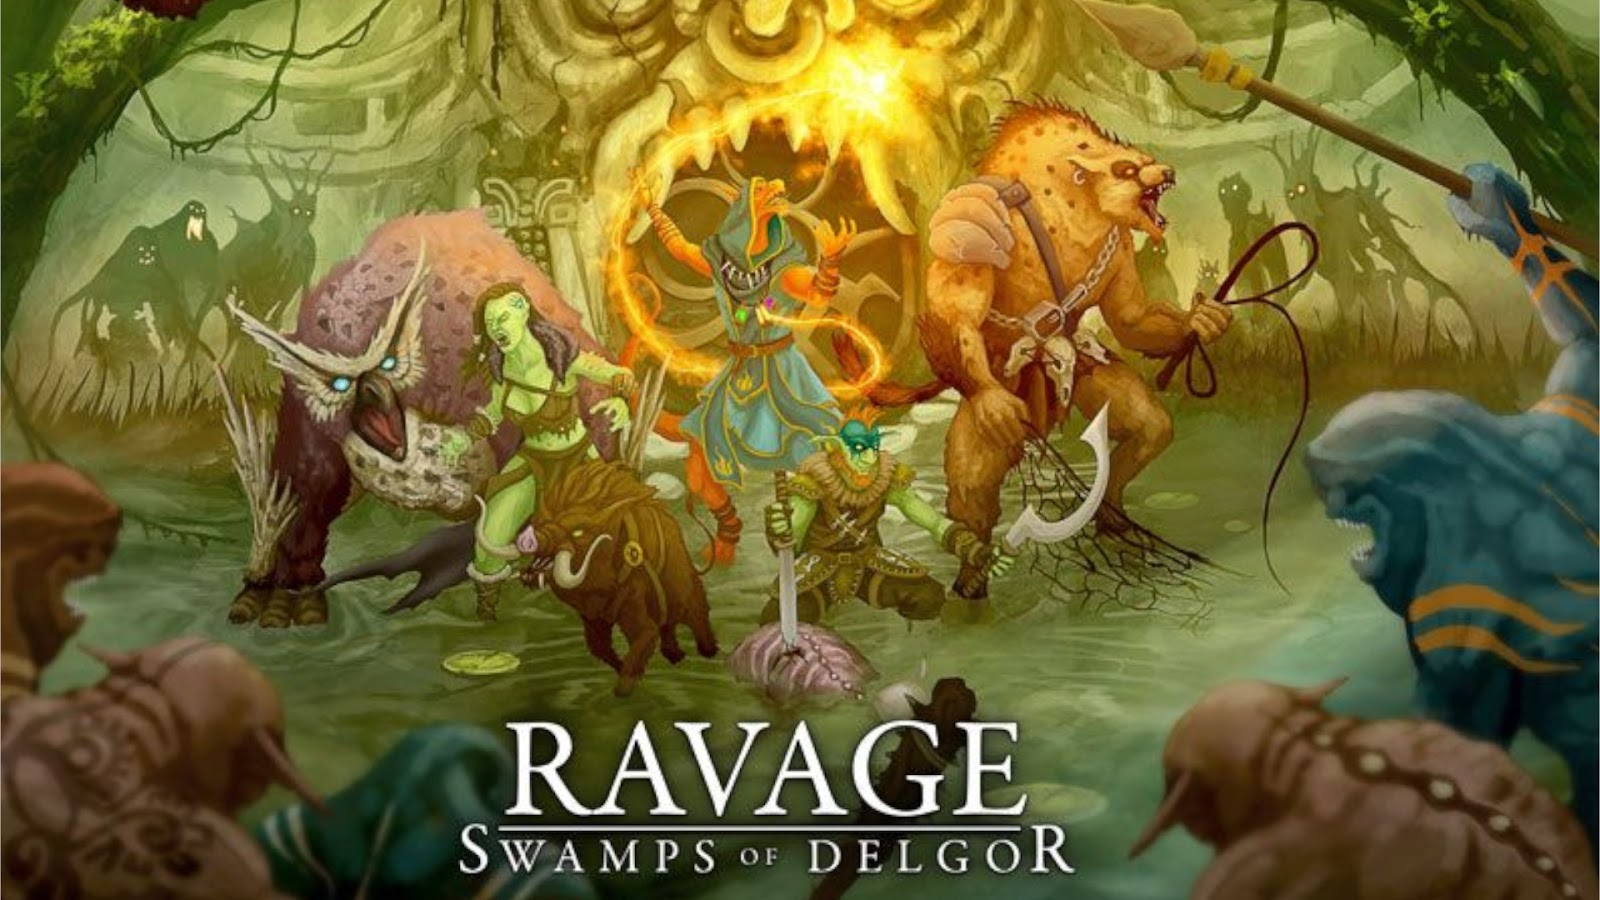 2020 Most Anticipated Games Best Kickstarters Ravage Swamps of Delgor Board Game